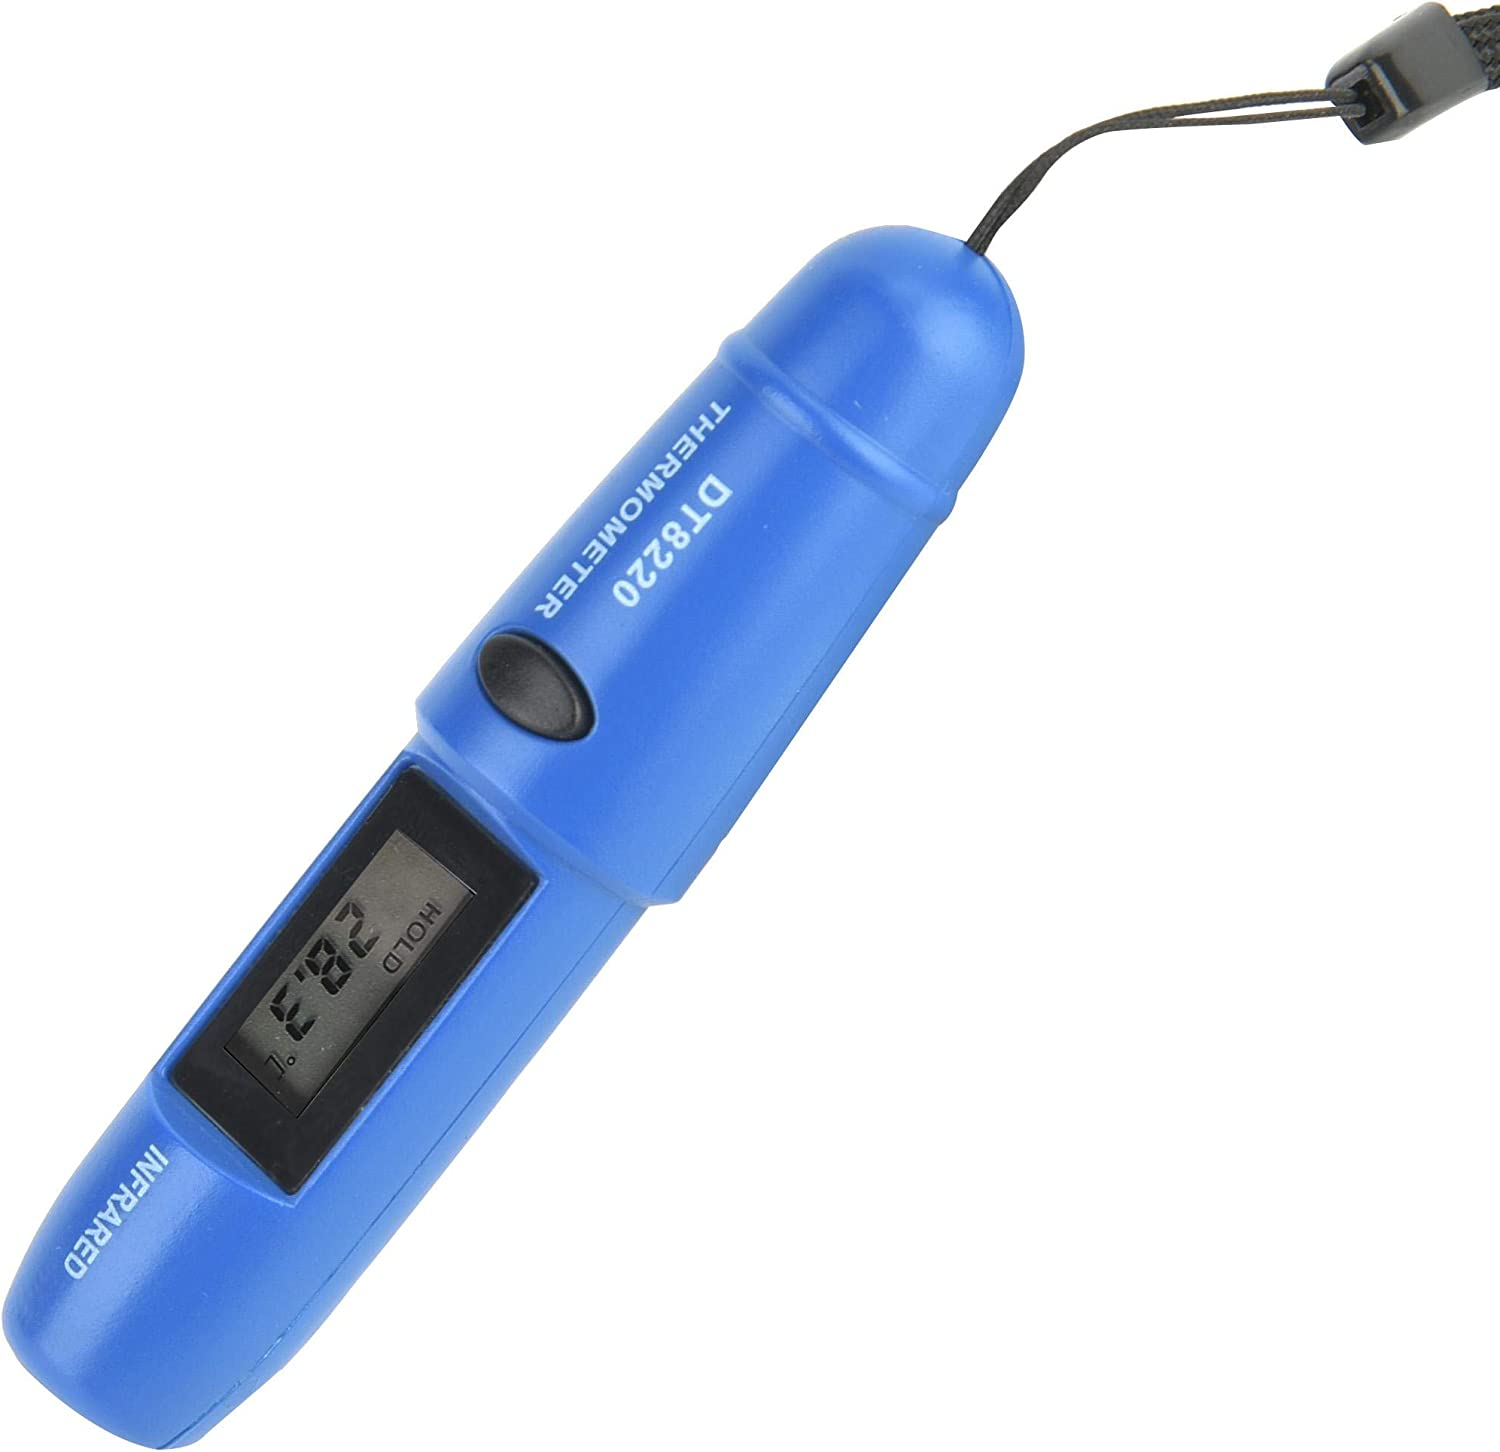 DT8220-50 ℃ ~ 220 ℃ Digital Infrared Contactless Thermometer with LCD